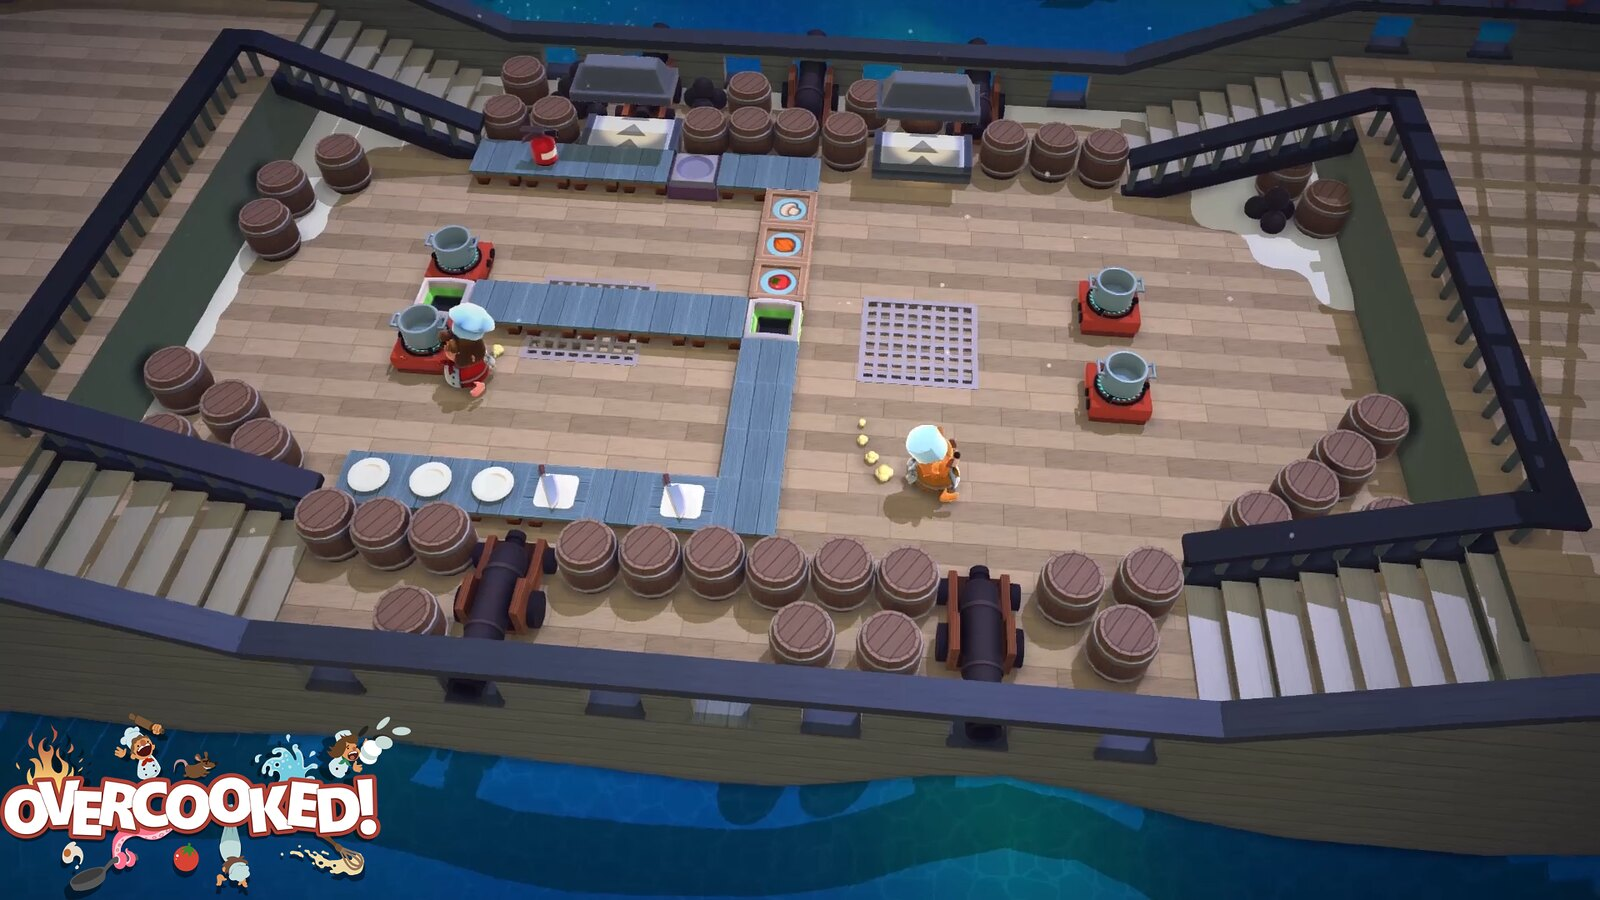 50134428582 eb7958016f h - Overcooked! All You Can Eat – ein Augenschmaus für PS5